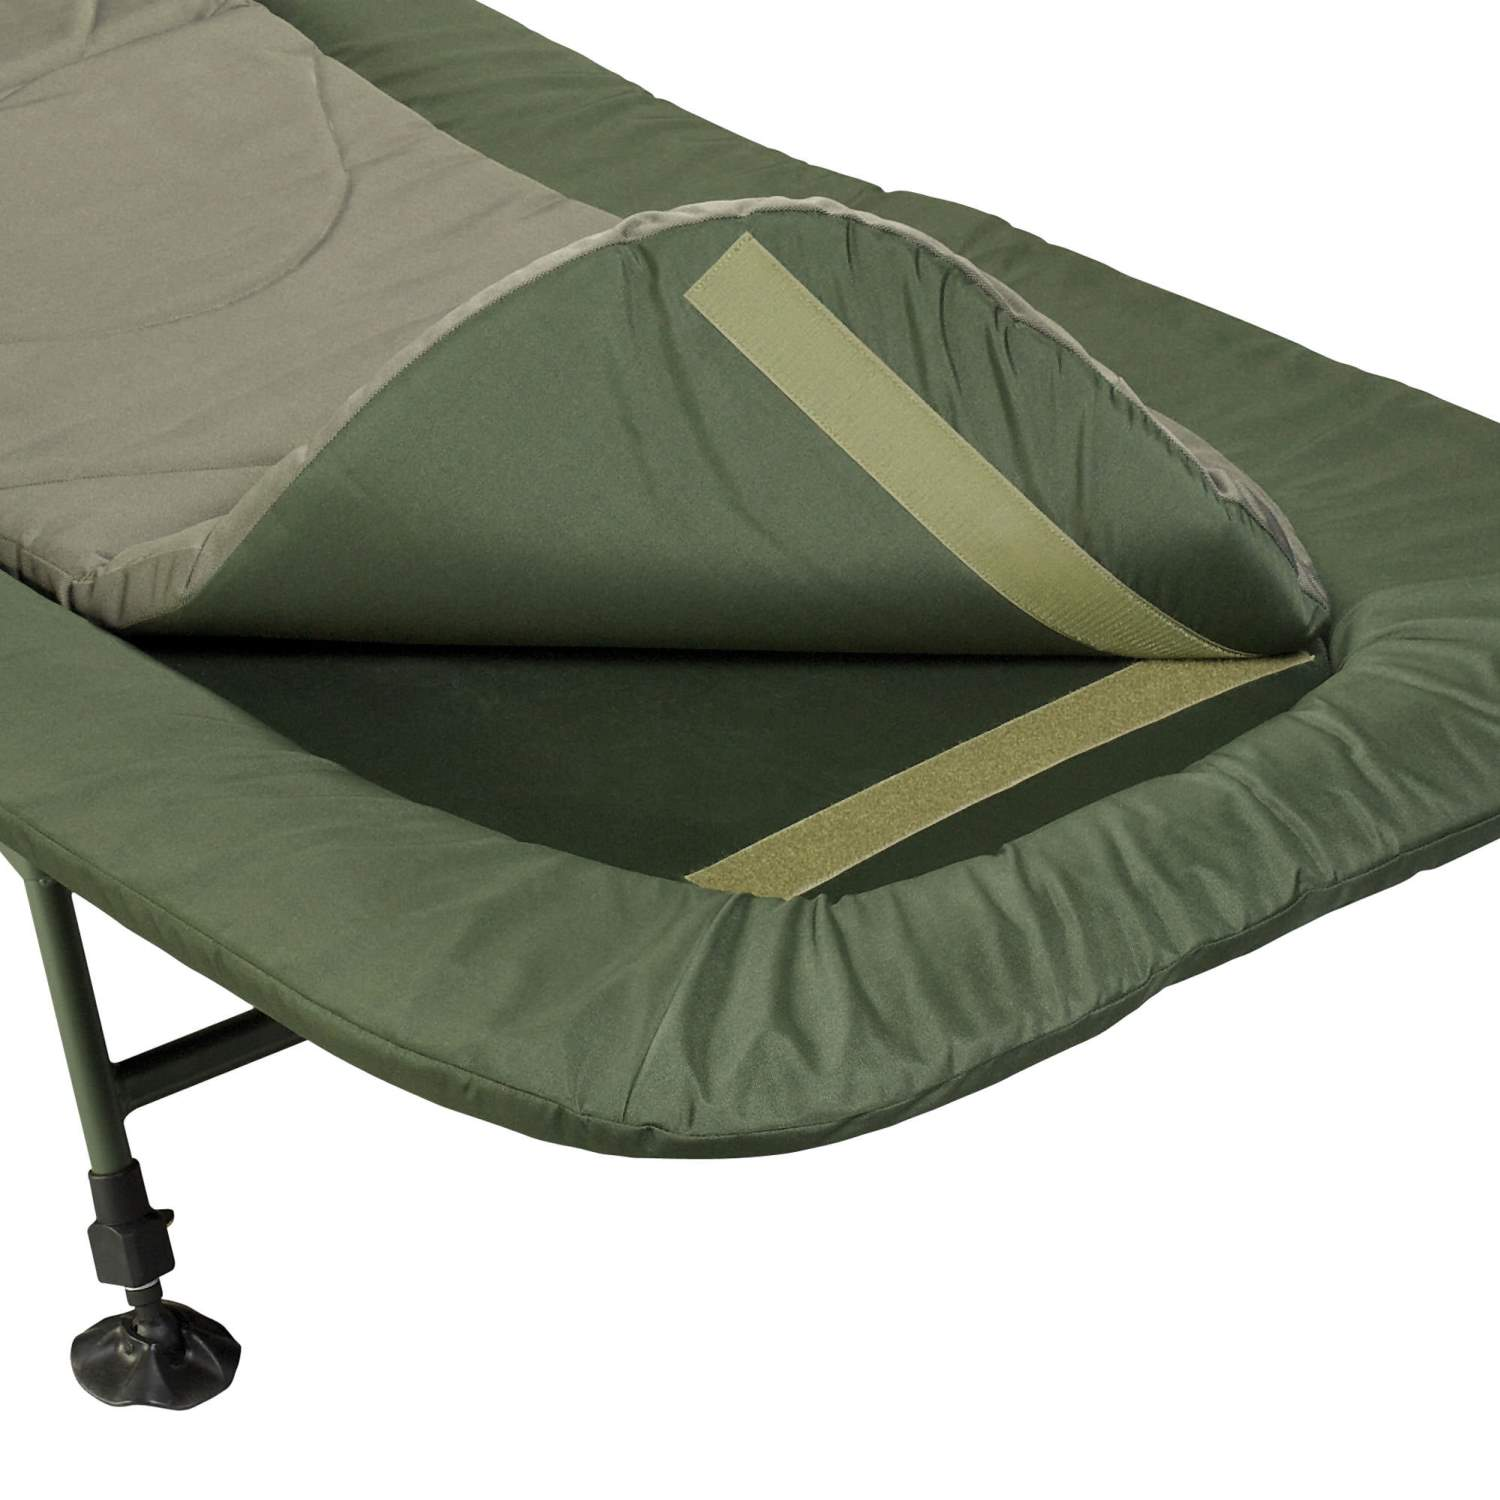 jrc extreme bedchair 8 6 bein karpfenliege feldbett angler liege tk170kg ebay. Black Bedroom Furniture Sets. Home Design Ideas